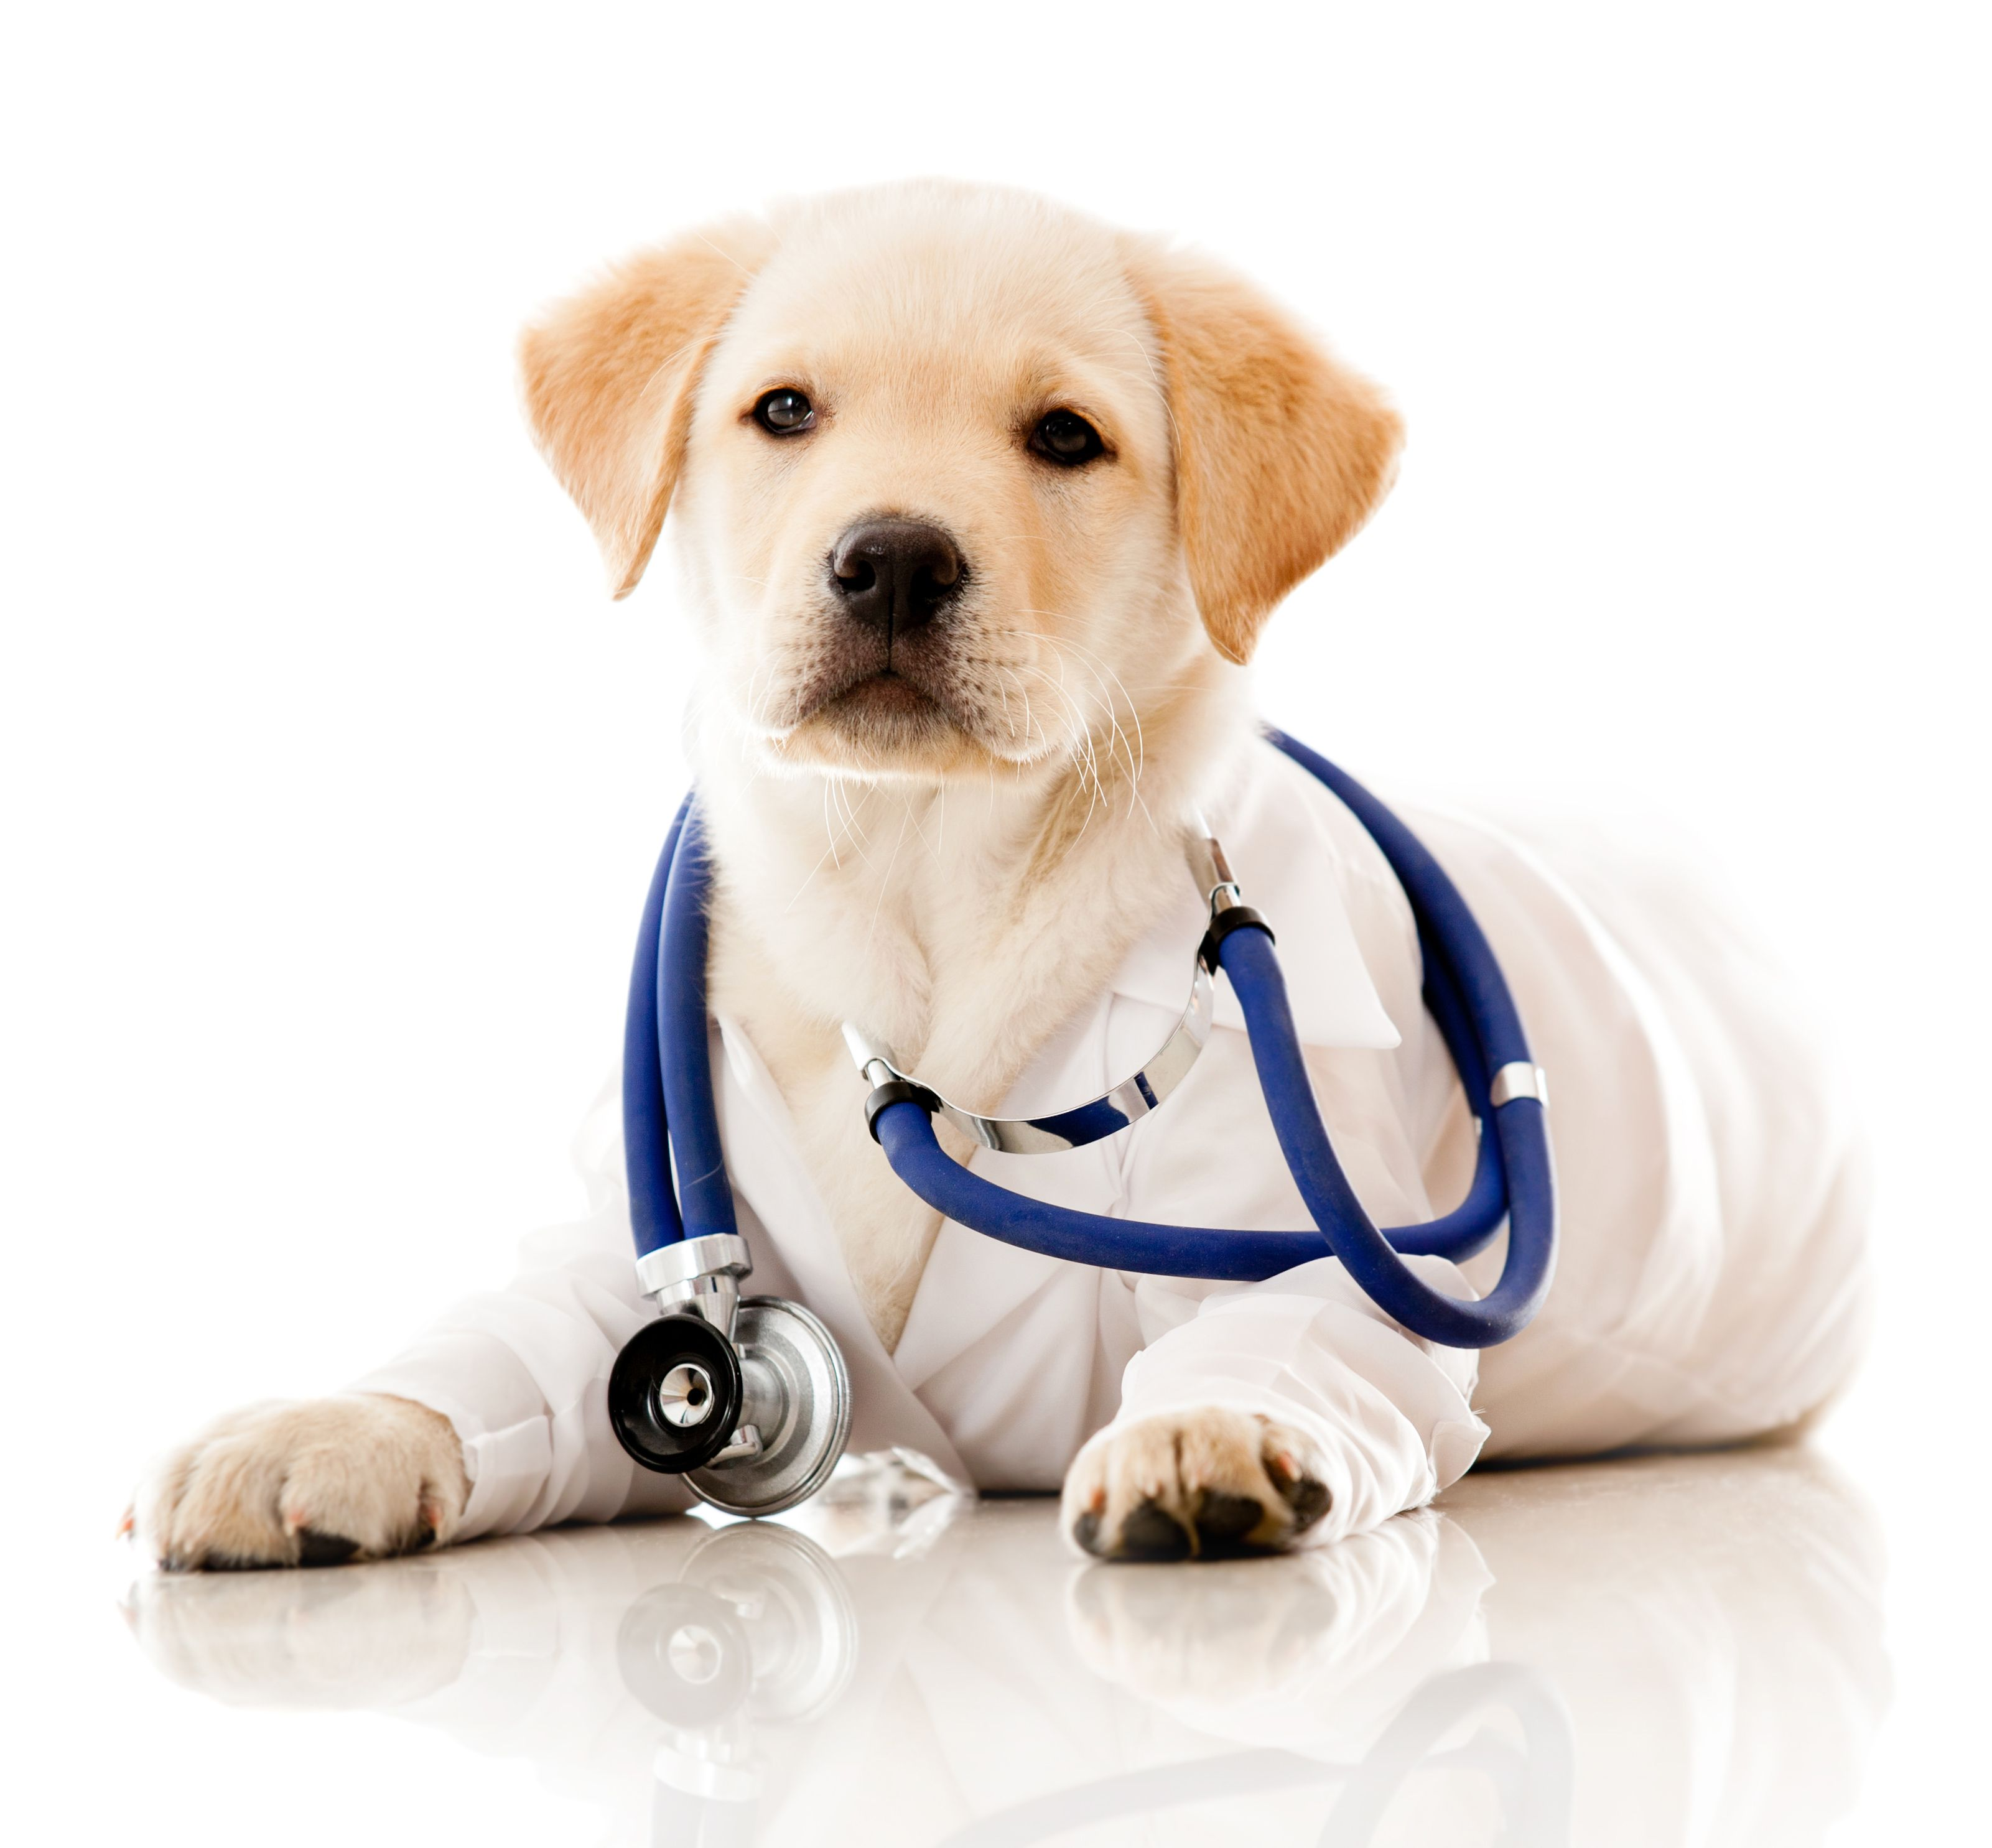 Pin On Cute Veterinary Assistant And Technician Look